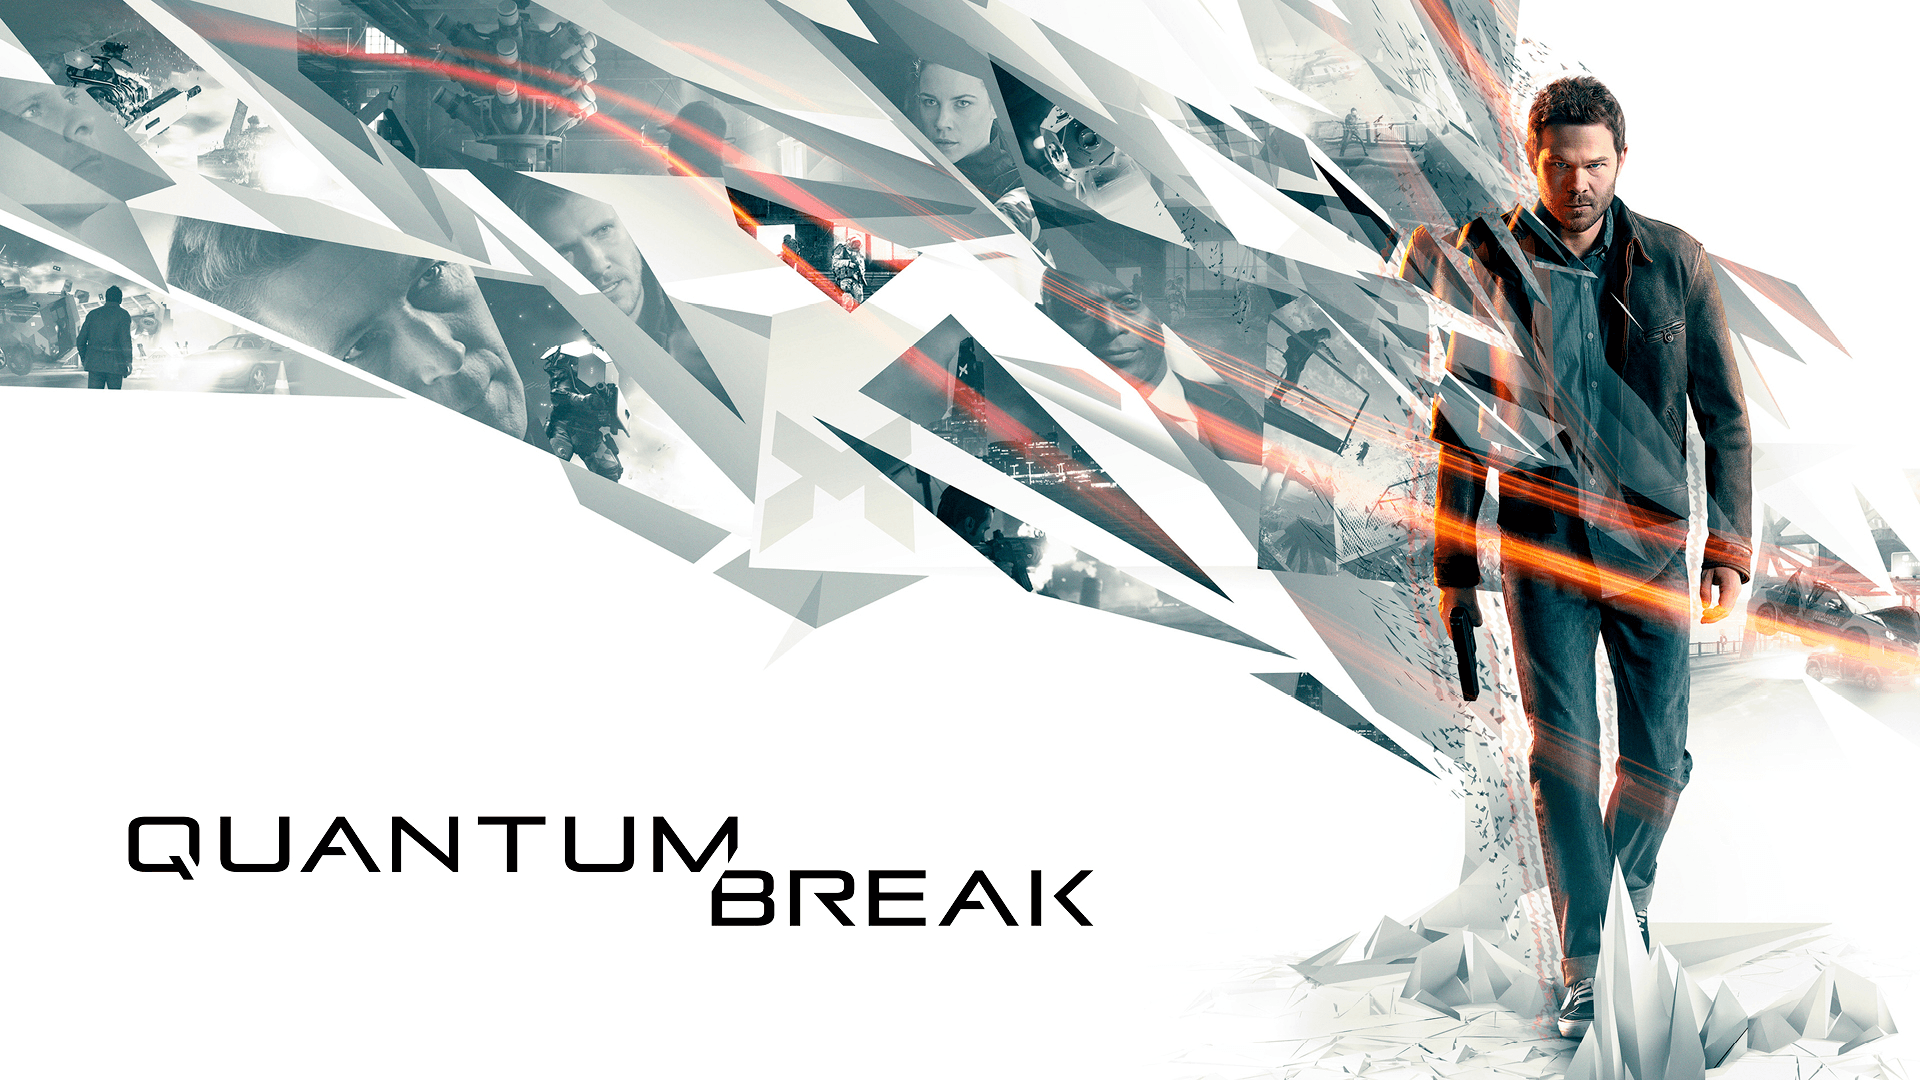 Sam Lake teases imminent Quantum Break announcement